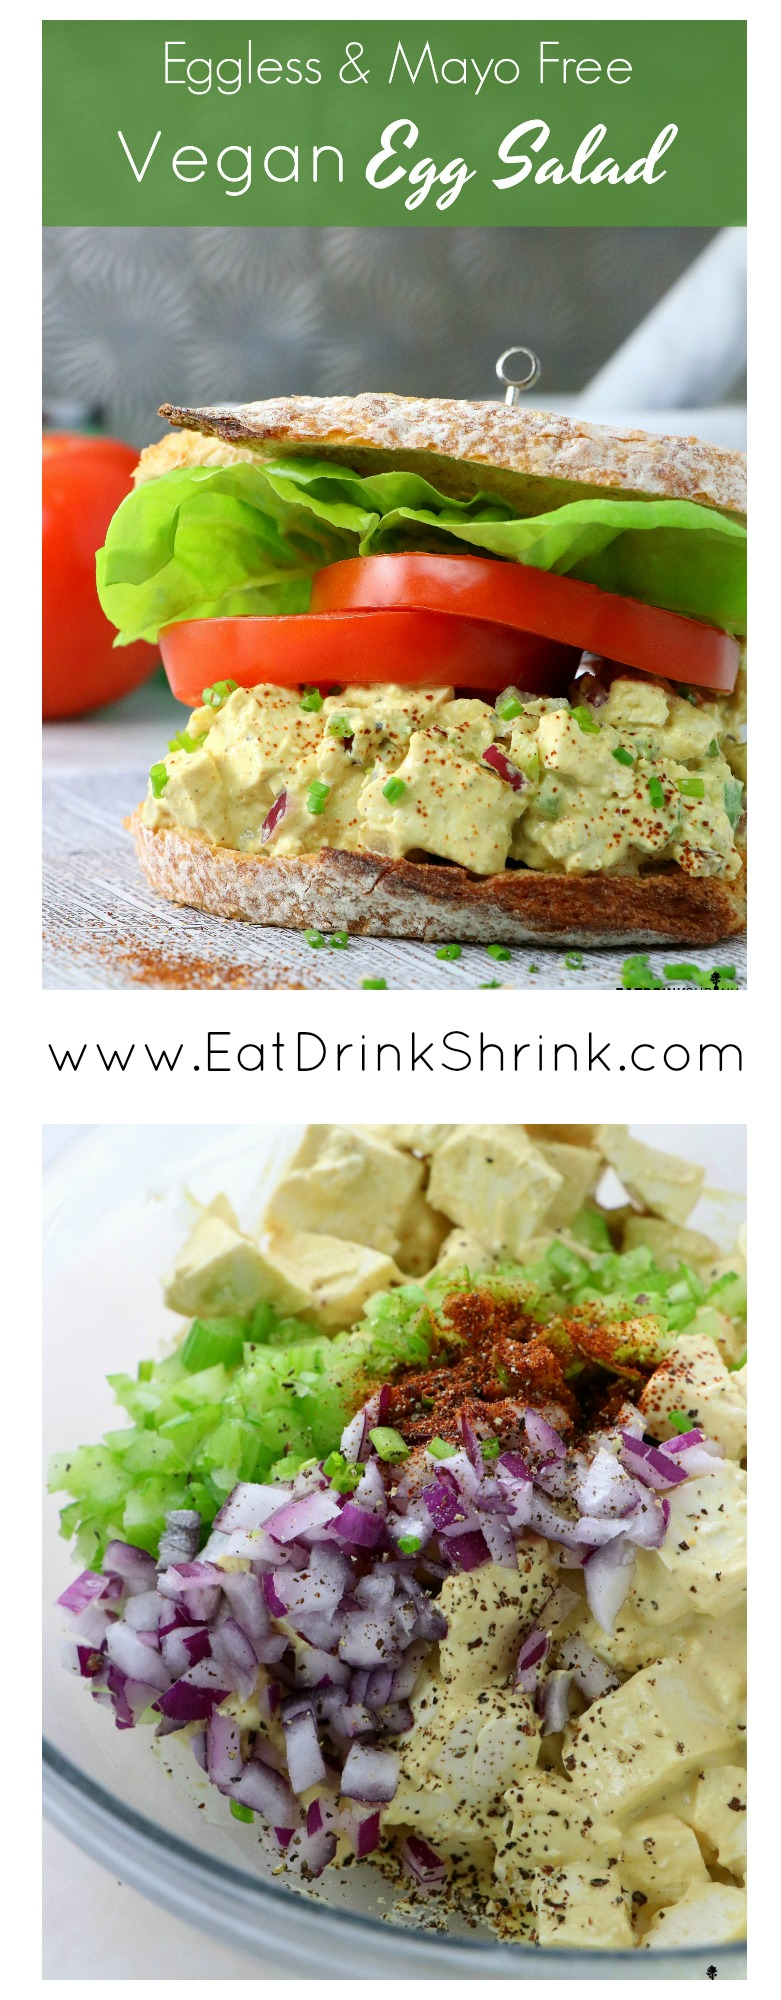 Vegan Eggless Mayo Free Egg Salad Eat Drink Shrink Drink Eat Egg Eggless Eiersalat Rezept Gesund Free Ma In 2020 Egg Salad Vegan Lunches Vegetarian Recipes